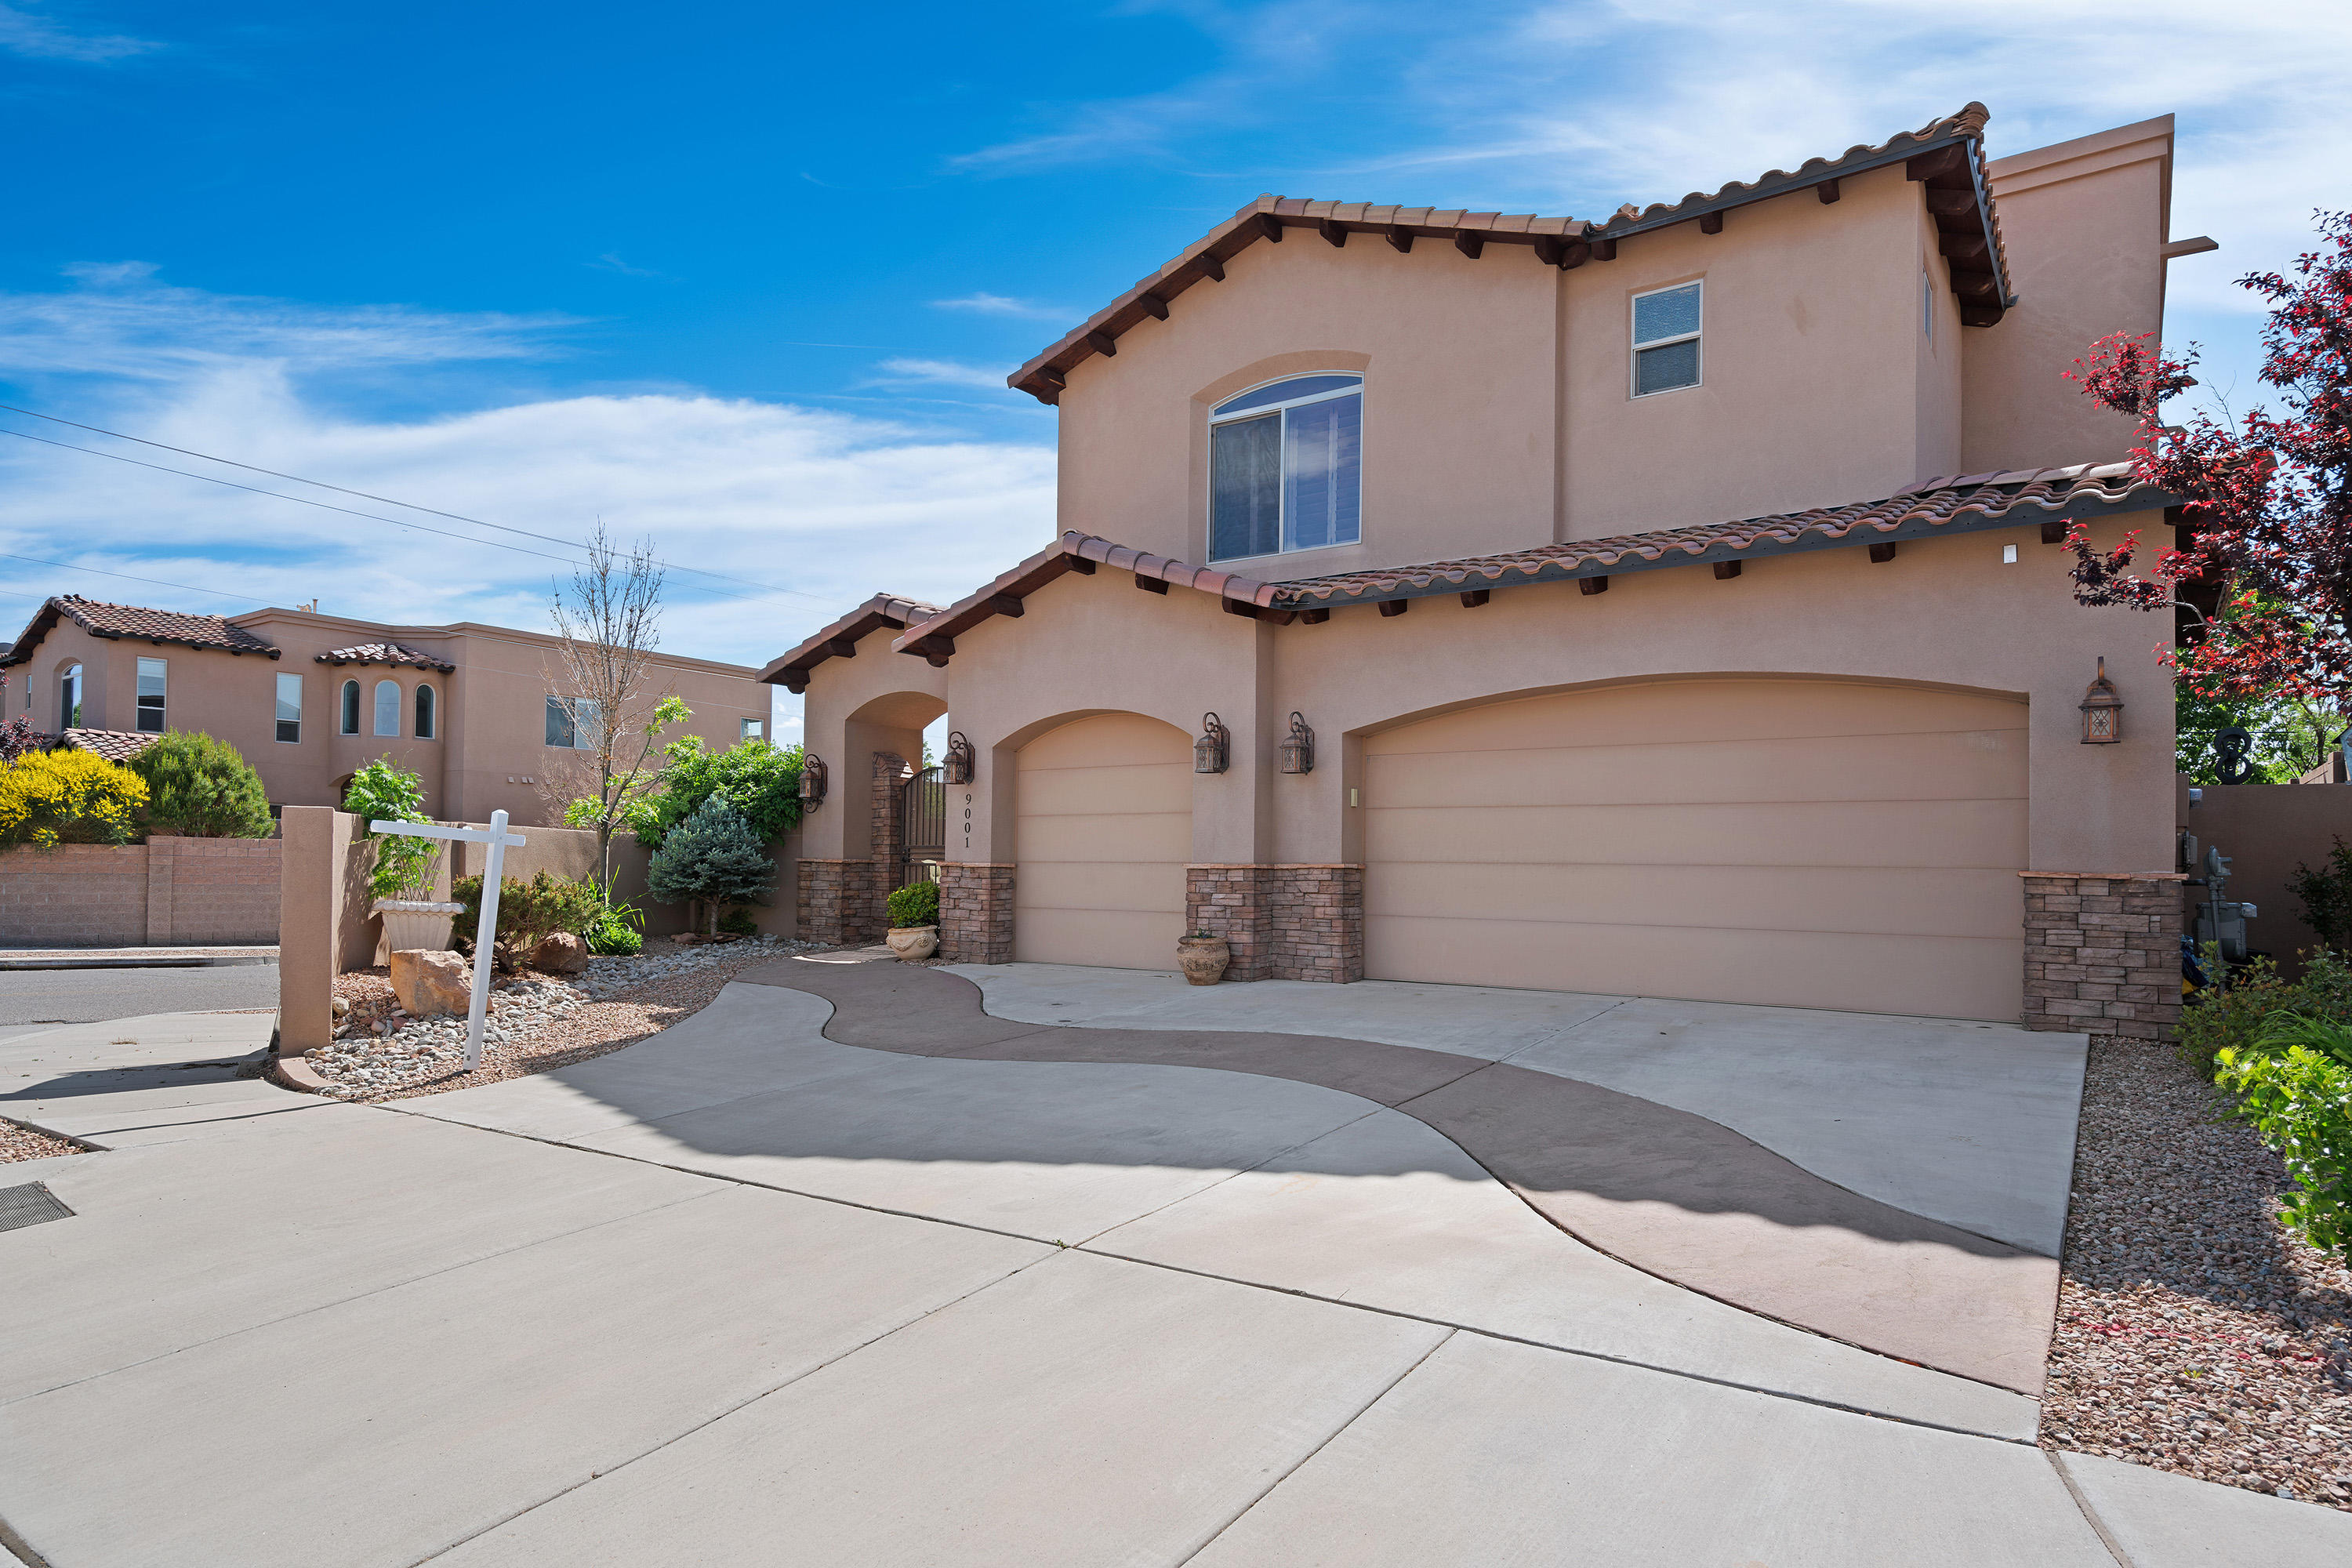 **OPEN HOUSE Saturday 2-7:30PM- Designed for comfortable living, TWO master bedroom suites featuring a striking Sandia mountain view also with a unique washer/ dryer located on each level! This luxurious home offers Travertine and hardwood flooring throughout, gleaming granite countertops Jenn-Air stainless steel appliances with a 6 burner gas range stove and a spacious 3 car garage with epoxy floors. UPGRADES include one of a kind interior wood shutters to last a lifetime, a two-story fireplace with a T & G ceiling and Stylish stone accents are customized throughout. Keep your utility costs low with dual high efficiency rated heating and cooling units programmed for each level protected by well insulated walls. Conveniently located near shopping, with views of balloon fiesta park. No HOA.